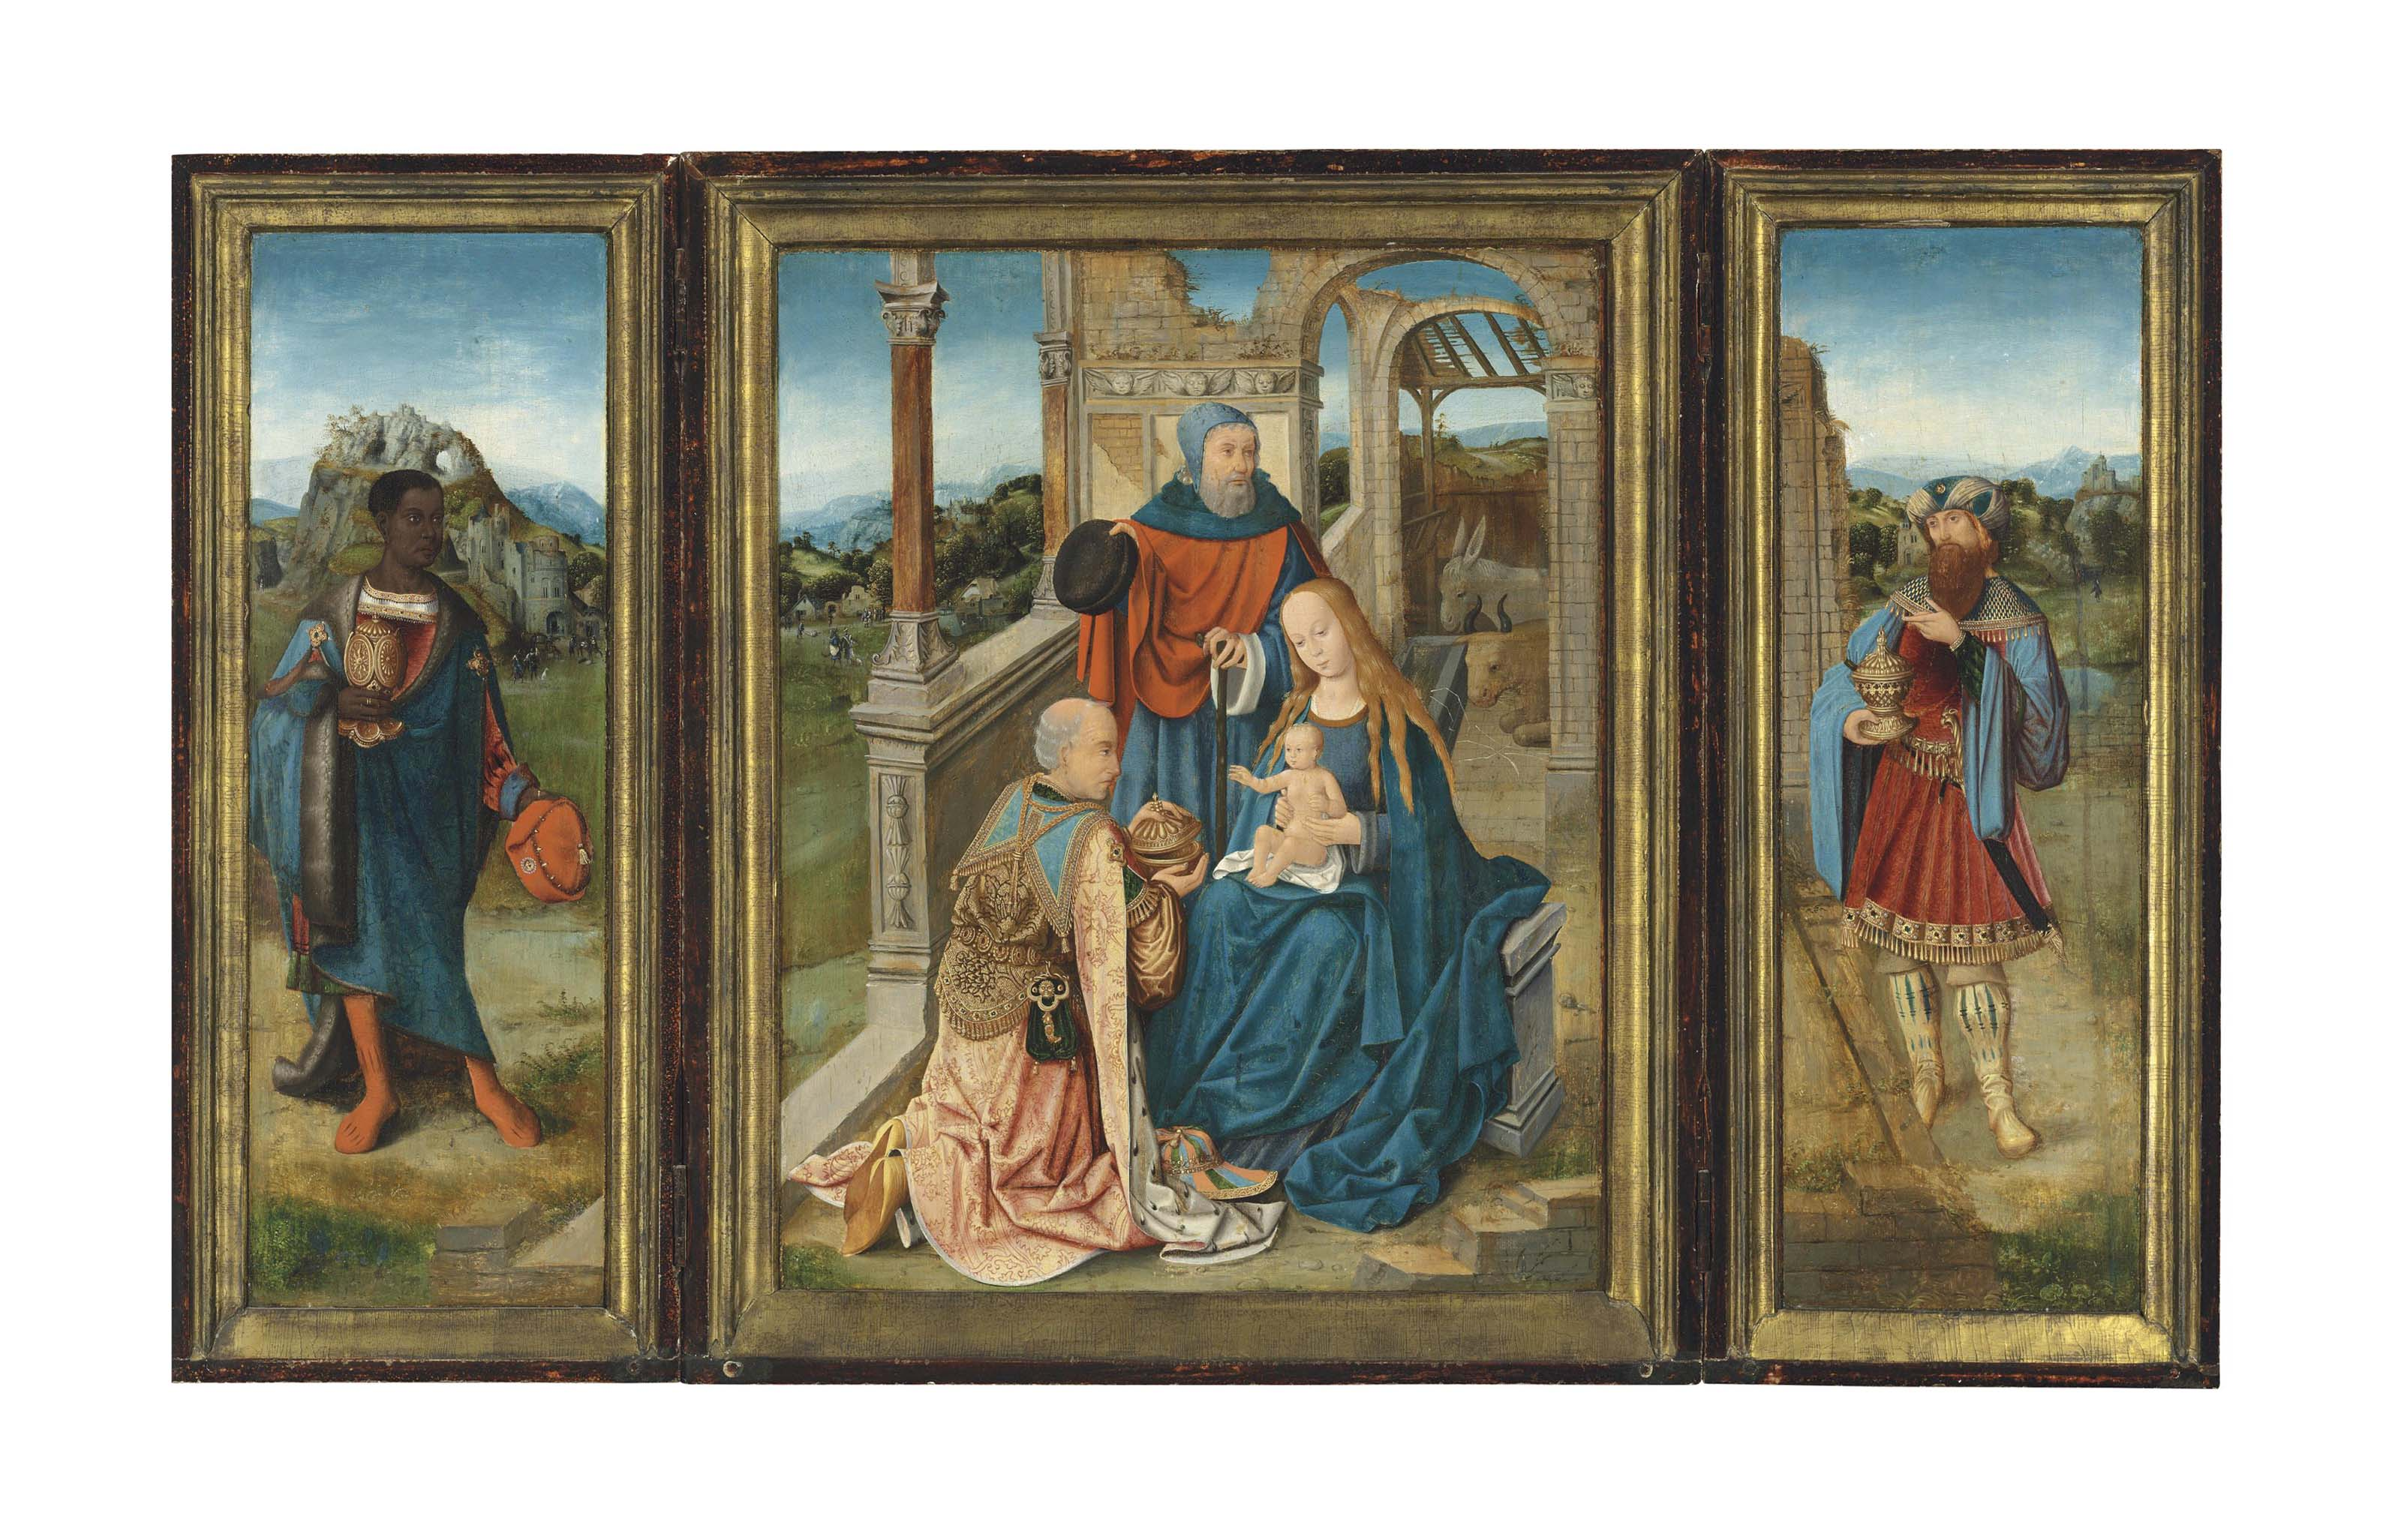 A triptych: The Adoration of the Magi